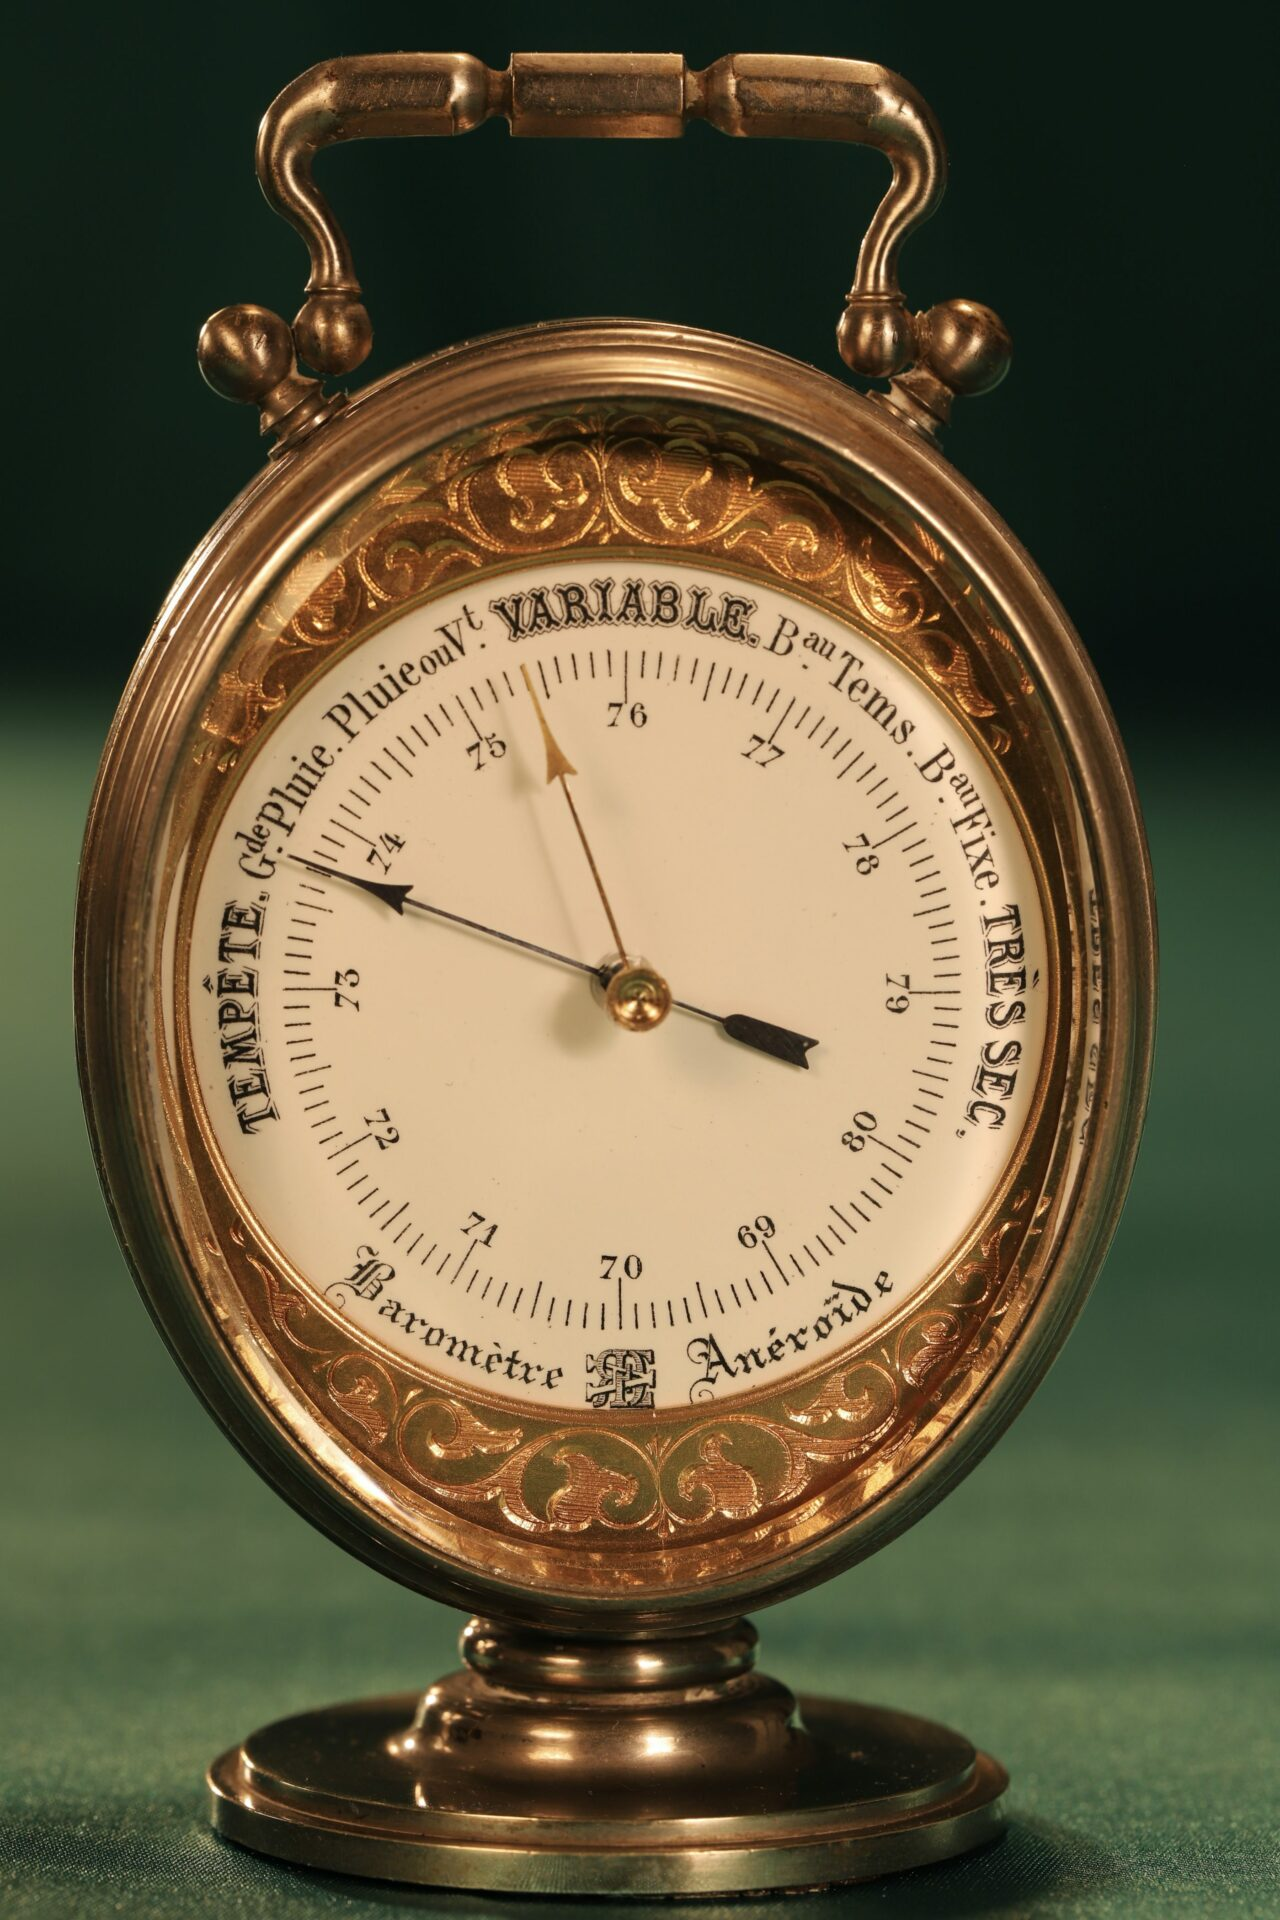 Image of Redier Travel Compendium showing the Barometer Side c1880